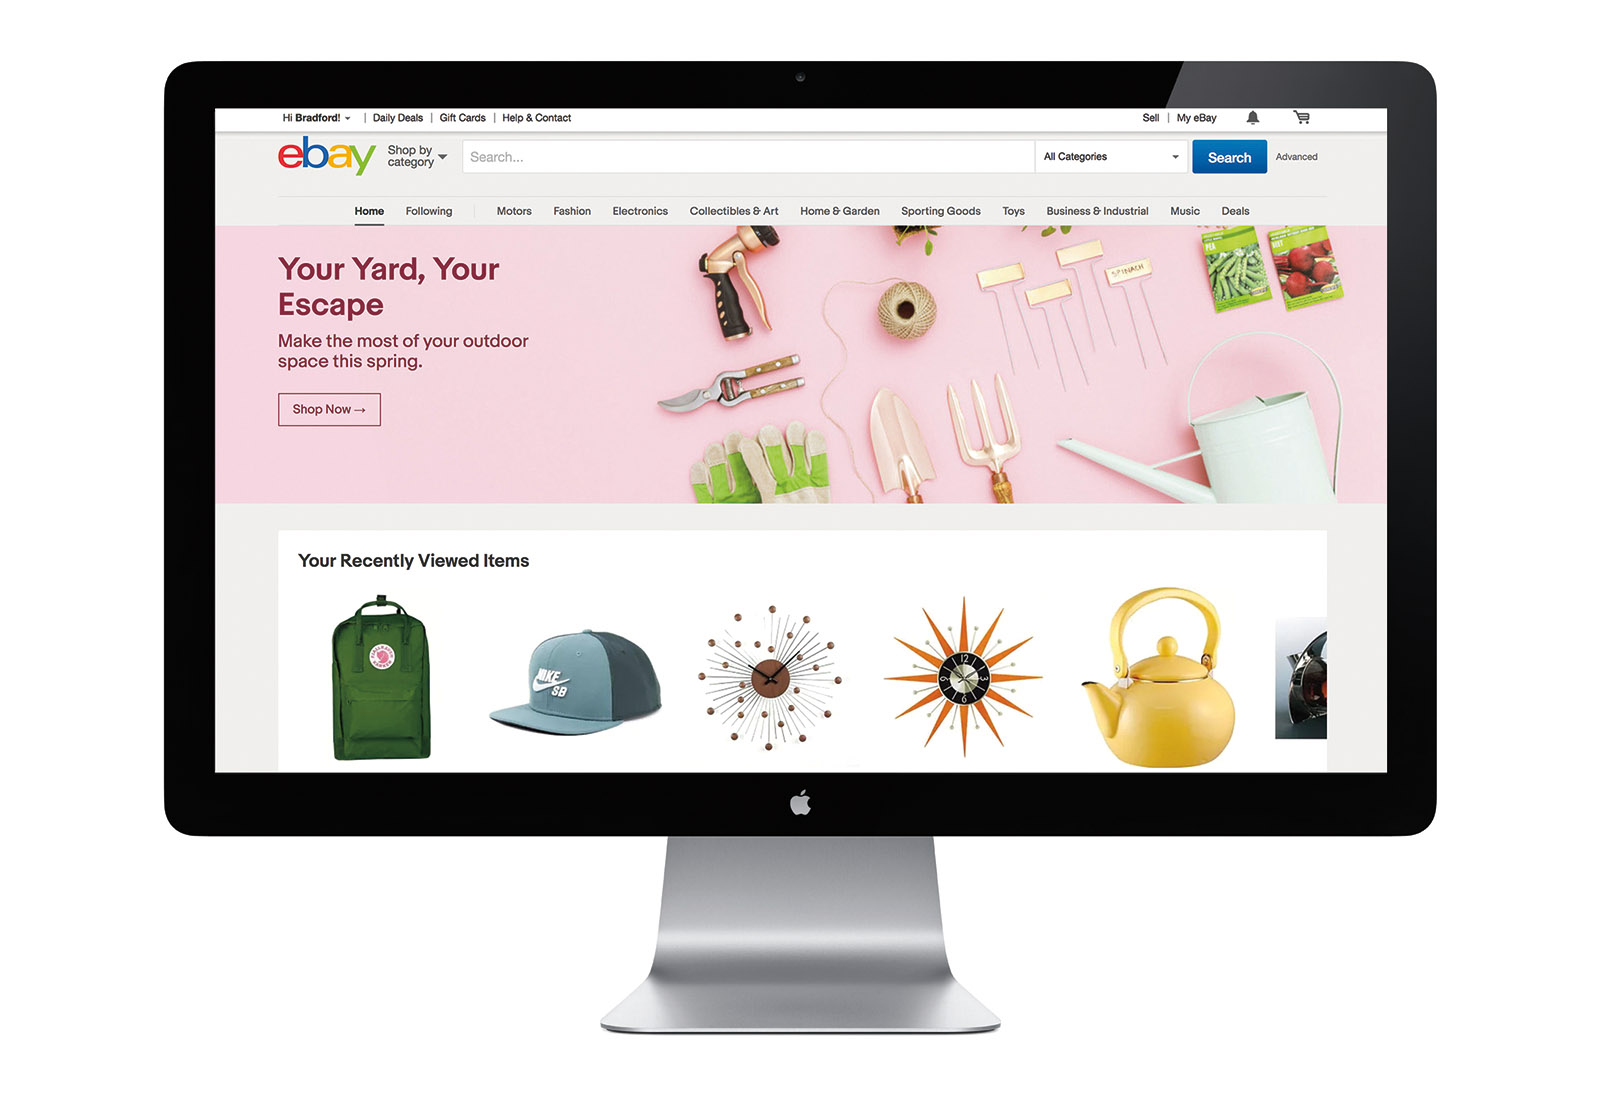 photo image eBay takes on Amazon with guaranteed 3-day shipping